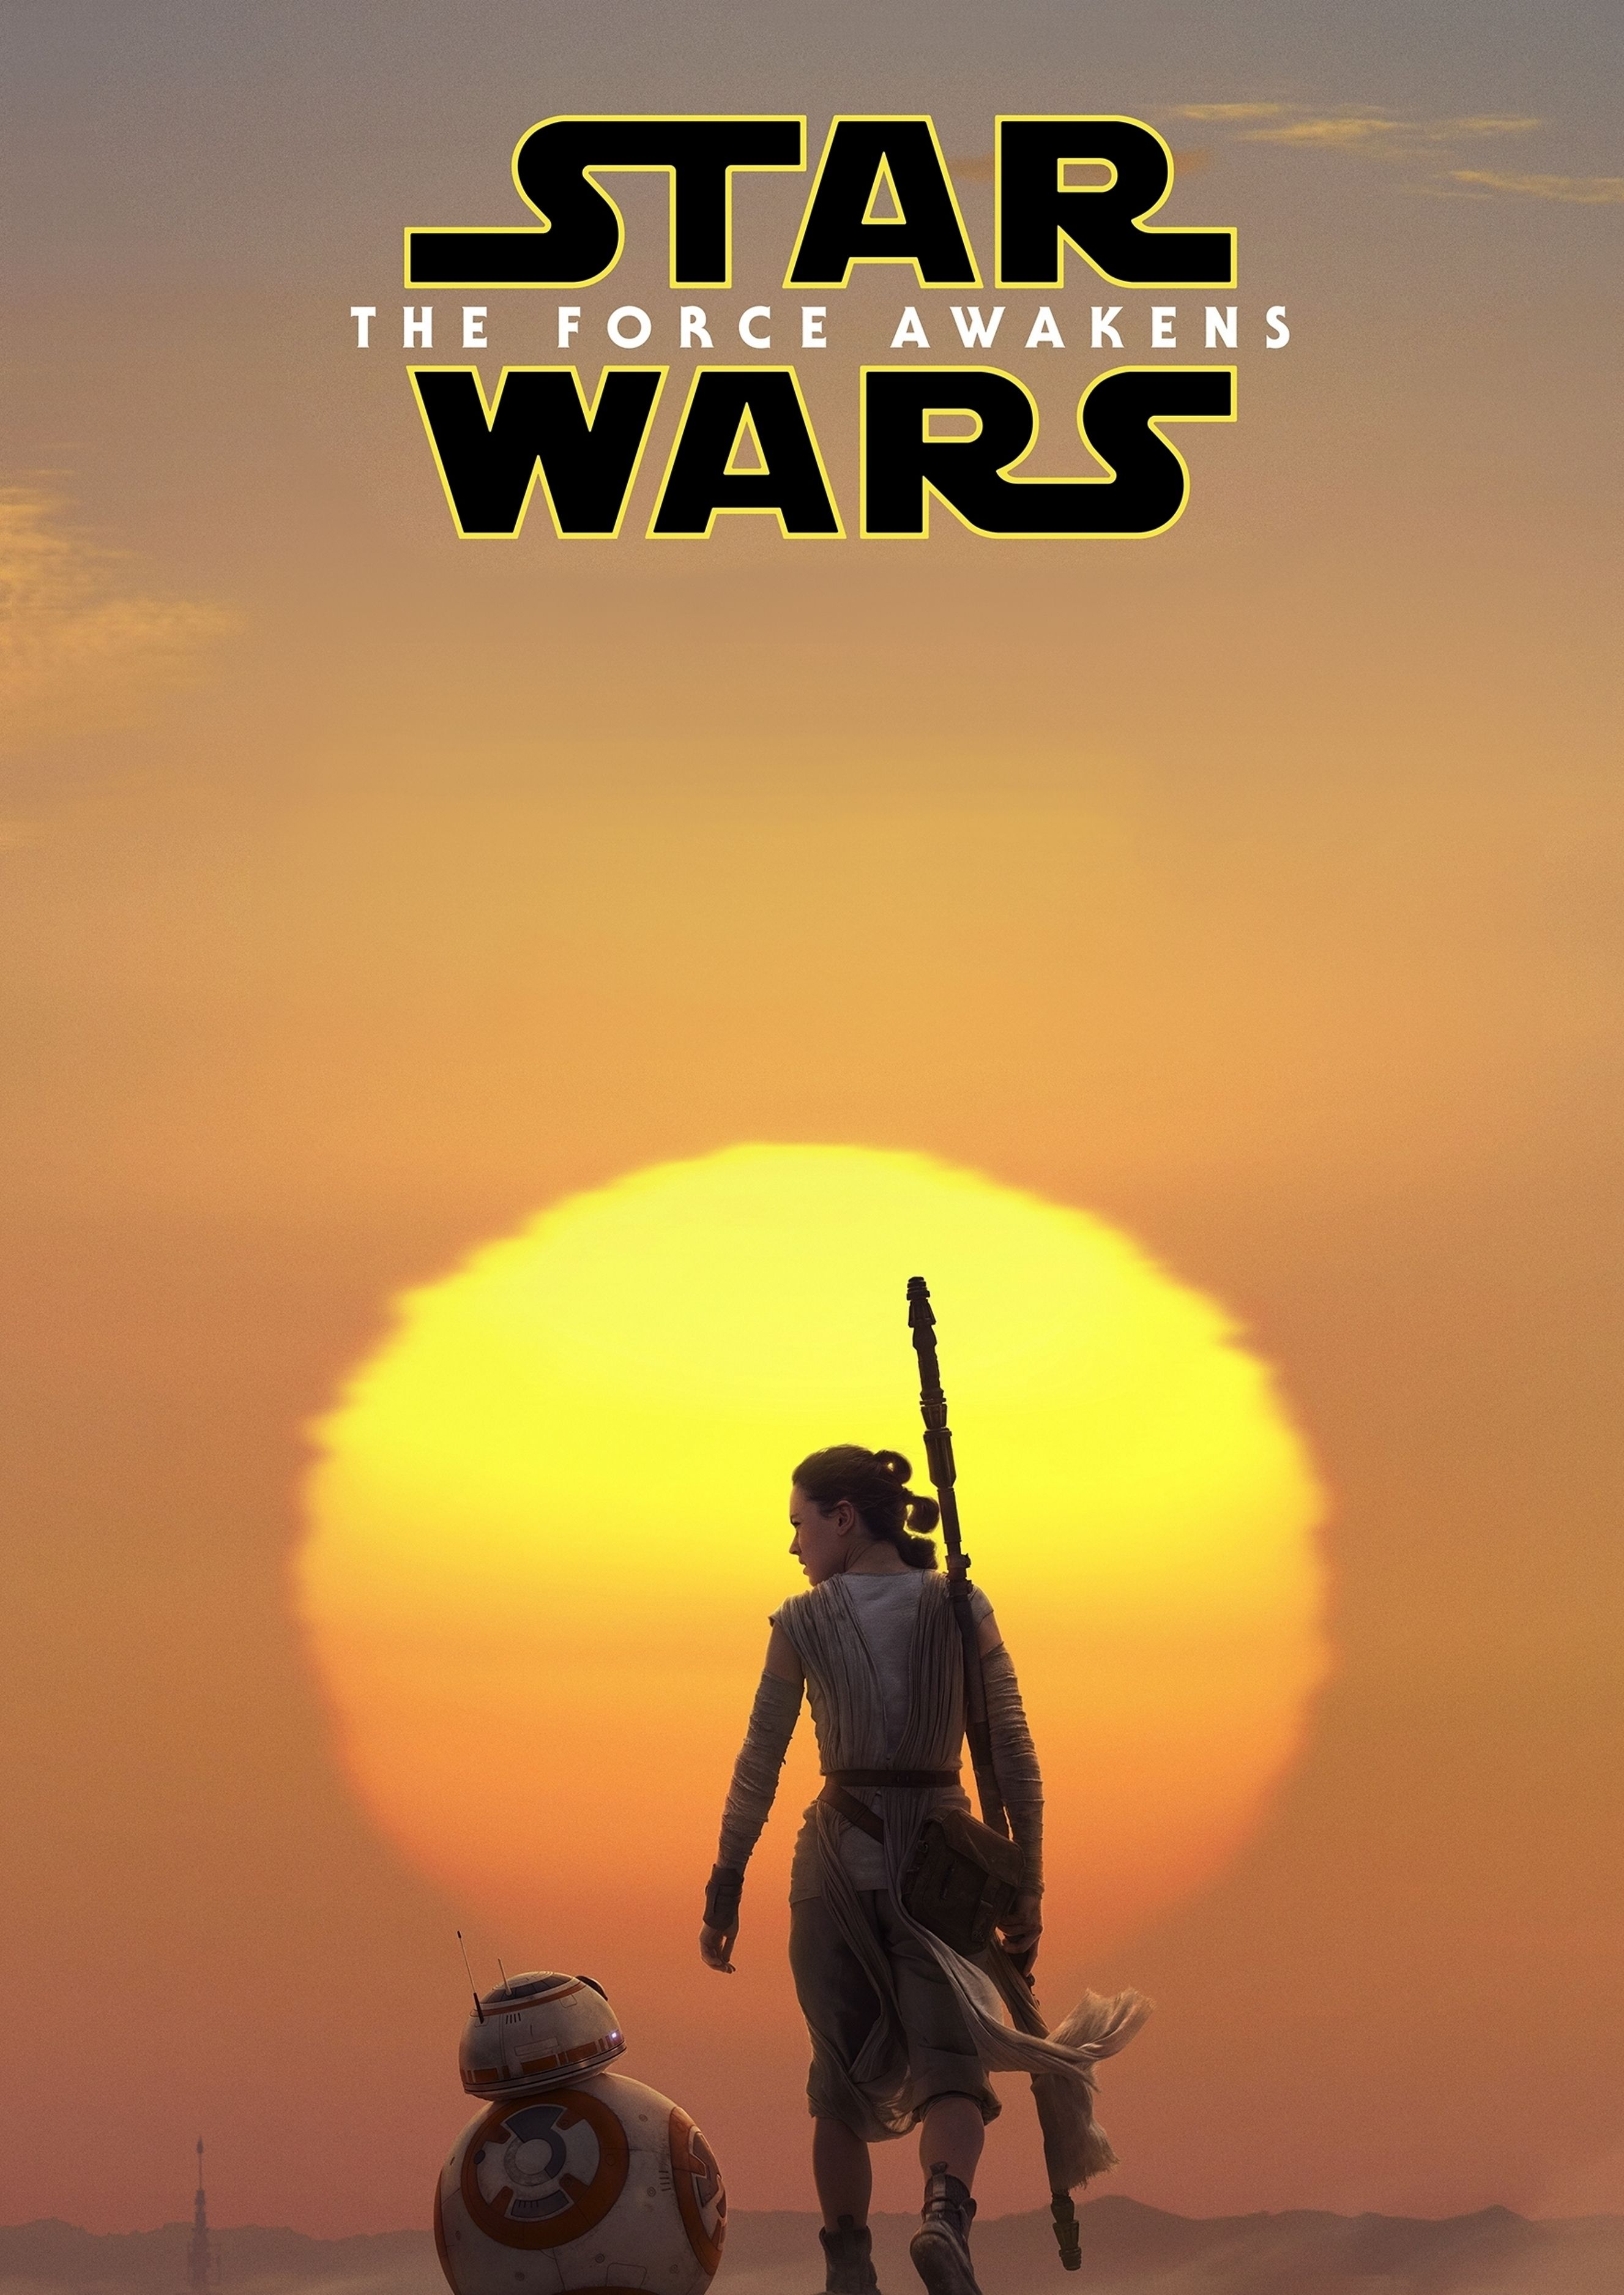 Star Wars The Force Awakens Rey IMAX Poster